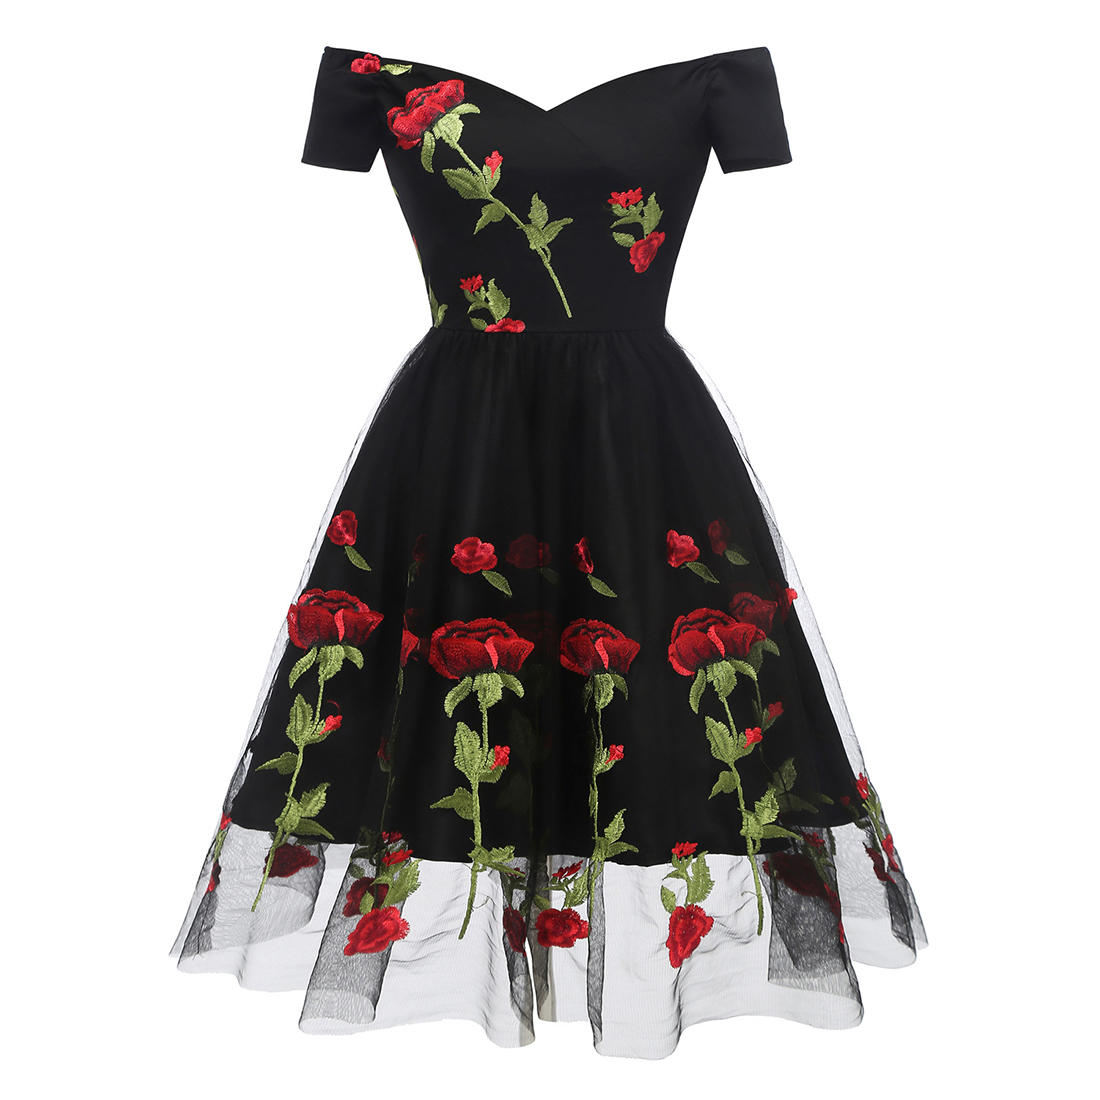 2019 Summer Dress Women Vintage 70s Mexican Ethnic Floral Embroidered Boho Mini Off Shoulder Party Dress Vestido Robe Femme Gift hoodie